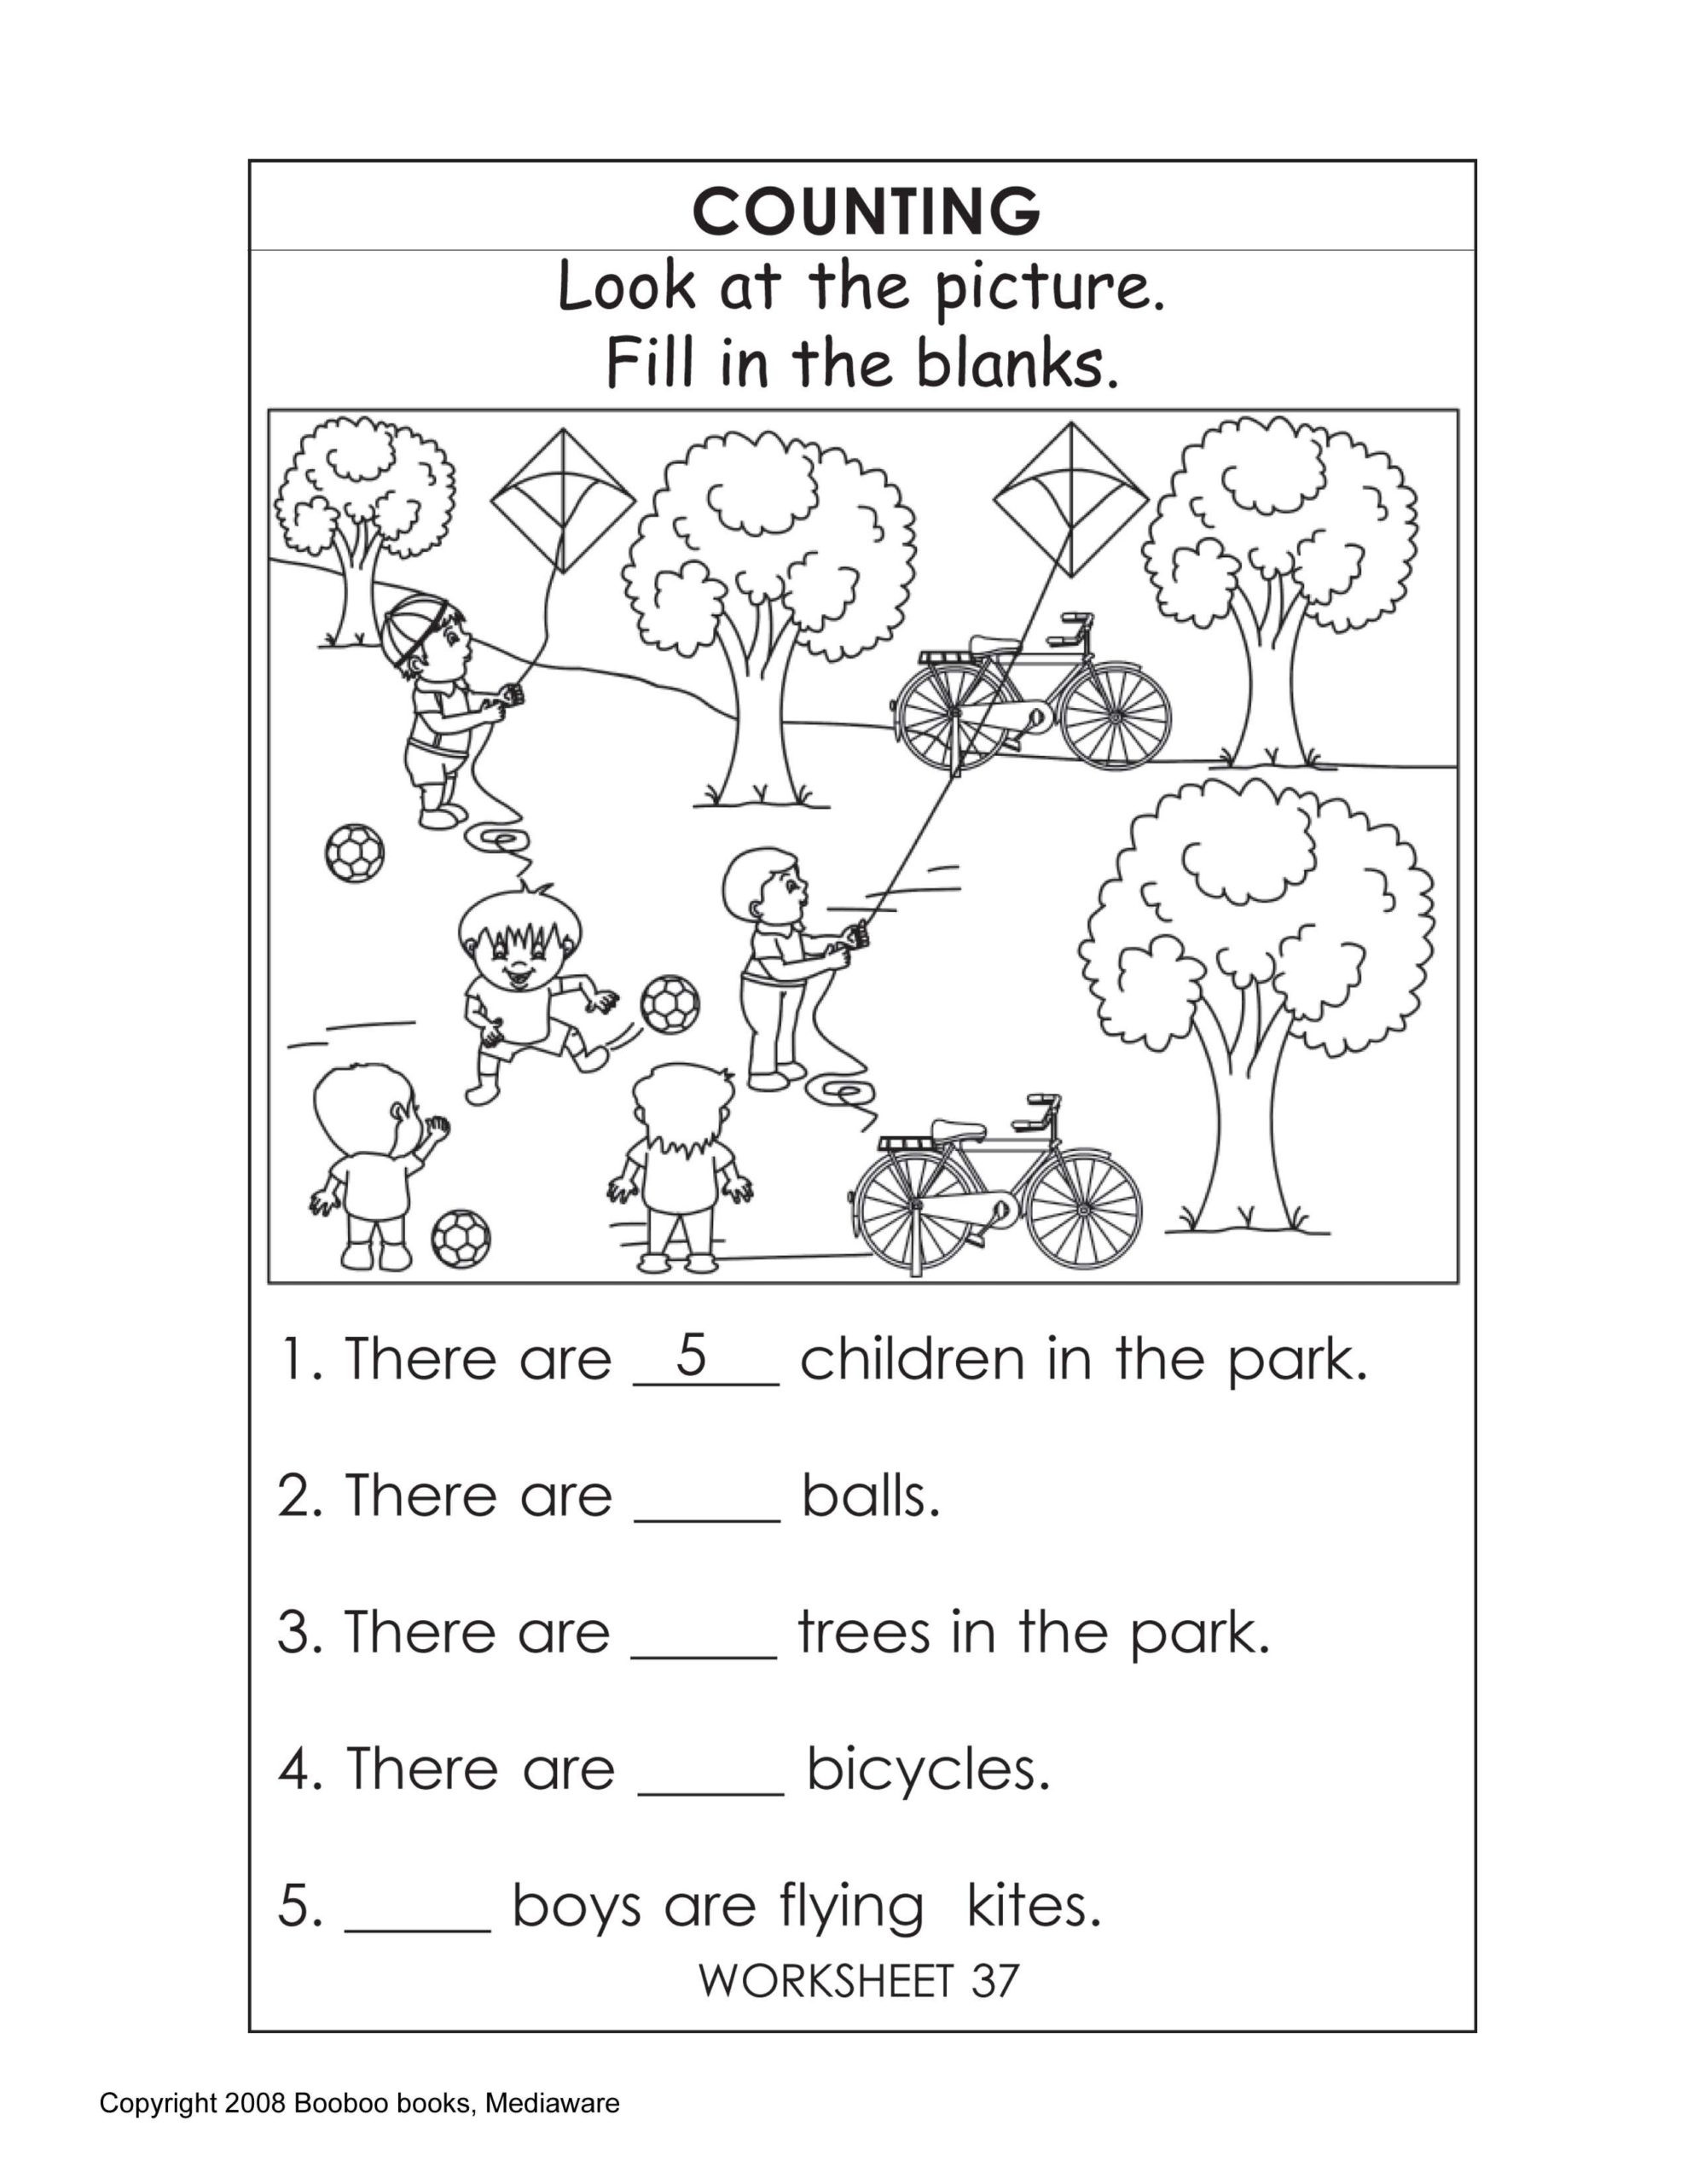 Writing Worksheets 7th Grade Worksheet Printable Pre Writing Worksheets Easy Games for